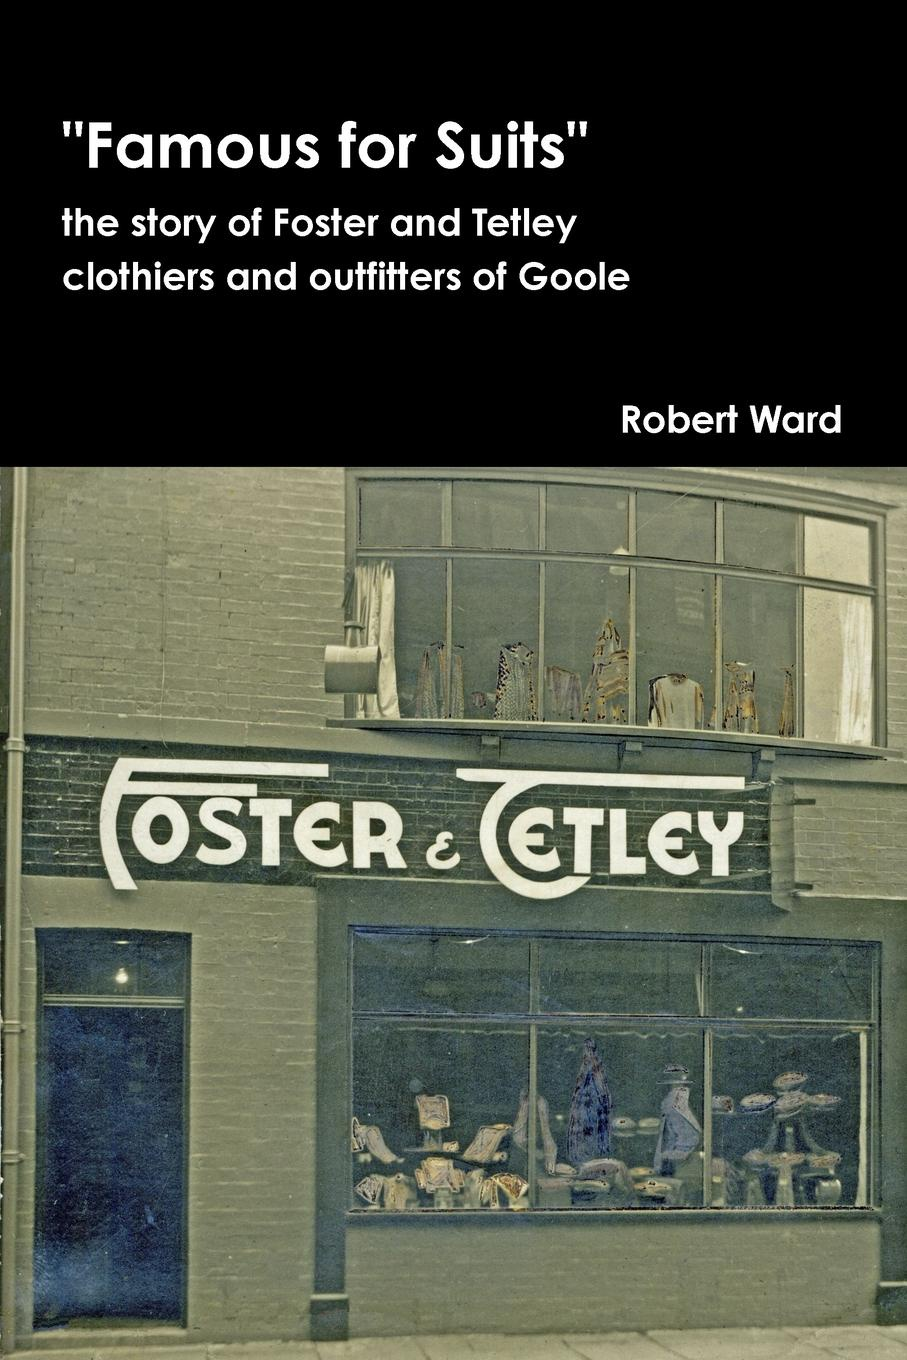 цены на Robert Ward Famous for Suits. the story of Foster and Tetley, clothiers and outfitters of Goole  в интернет-магазинах